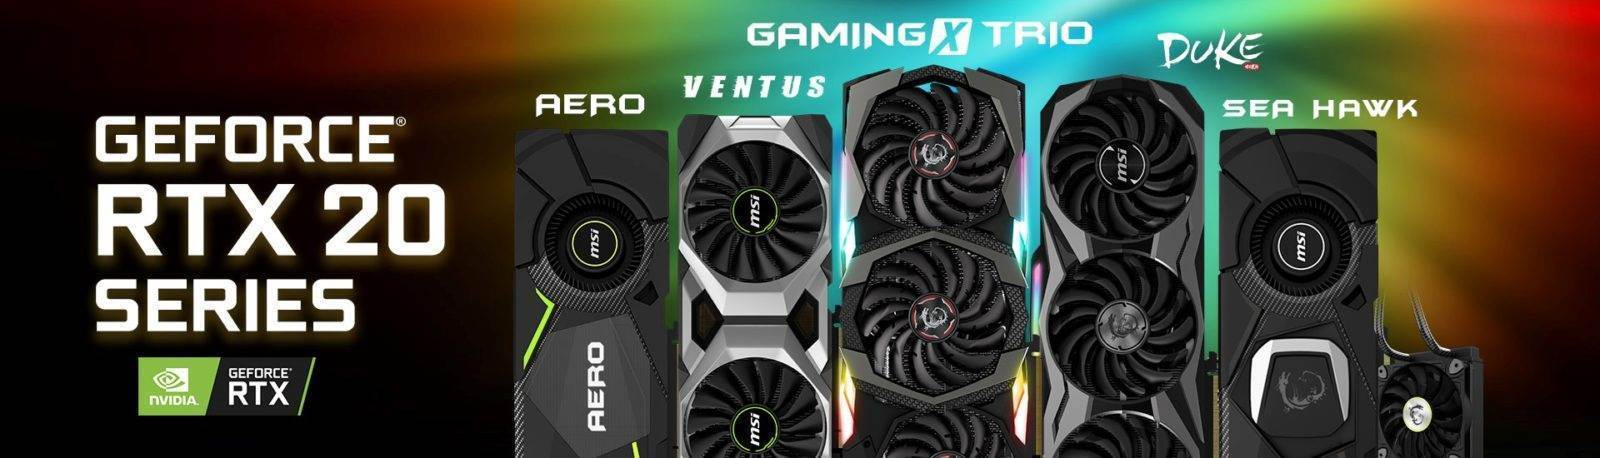 MSI spoils Nvidia's big reveal of the RTX 2080 | Components | News | PC  PowerPlay Magazine